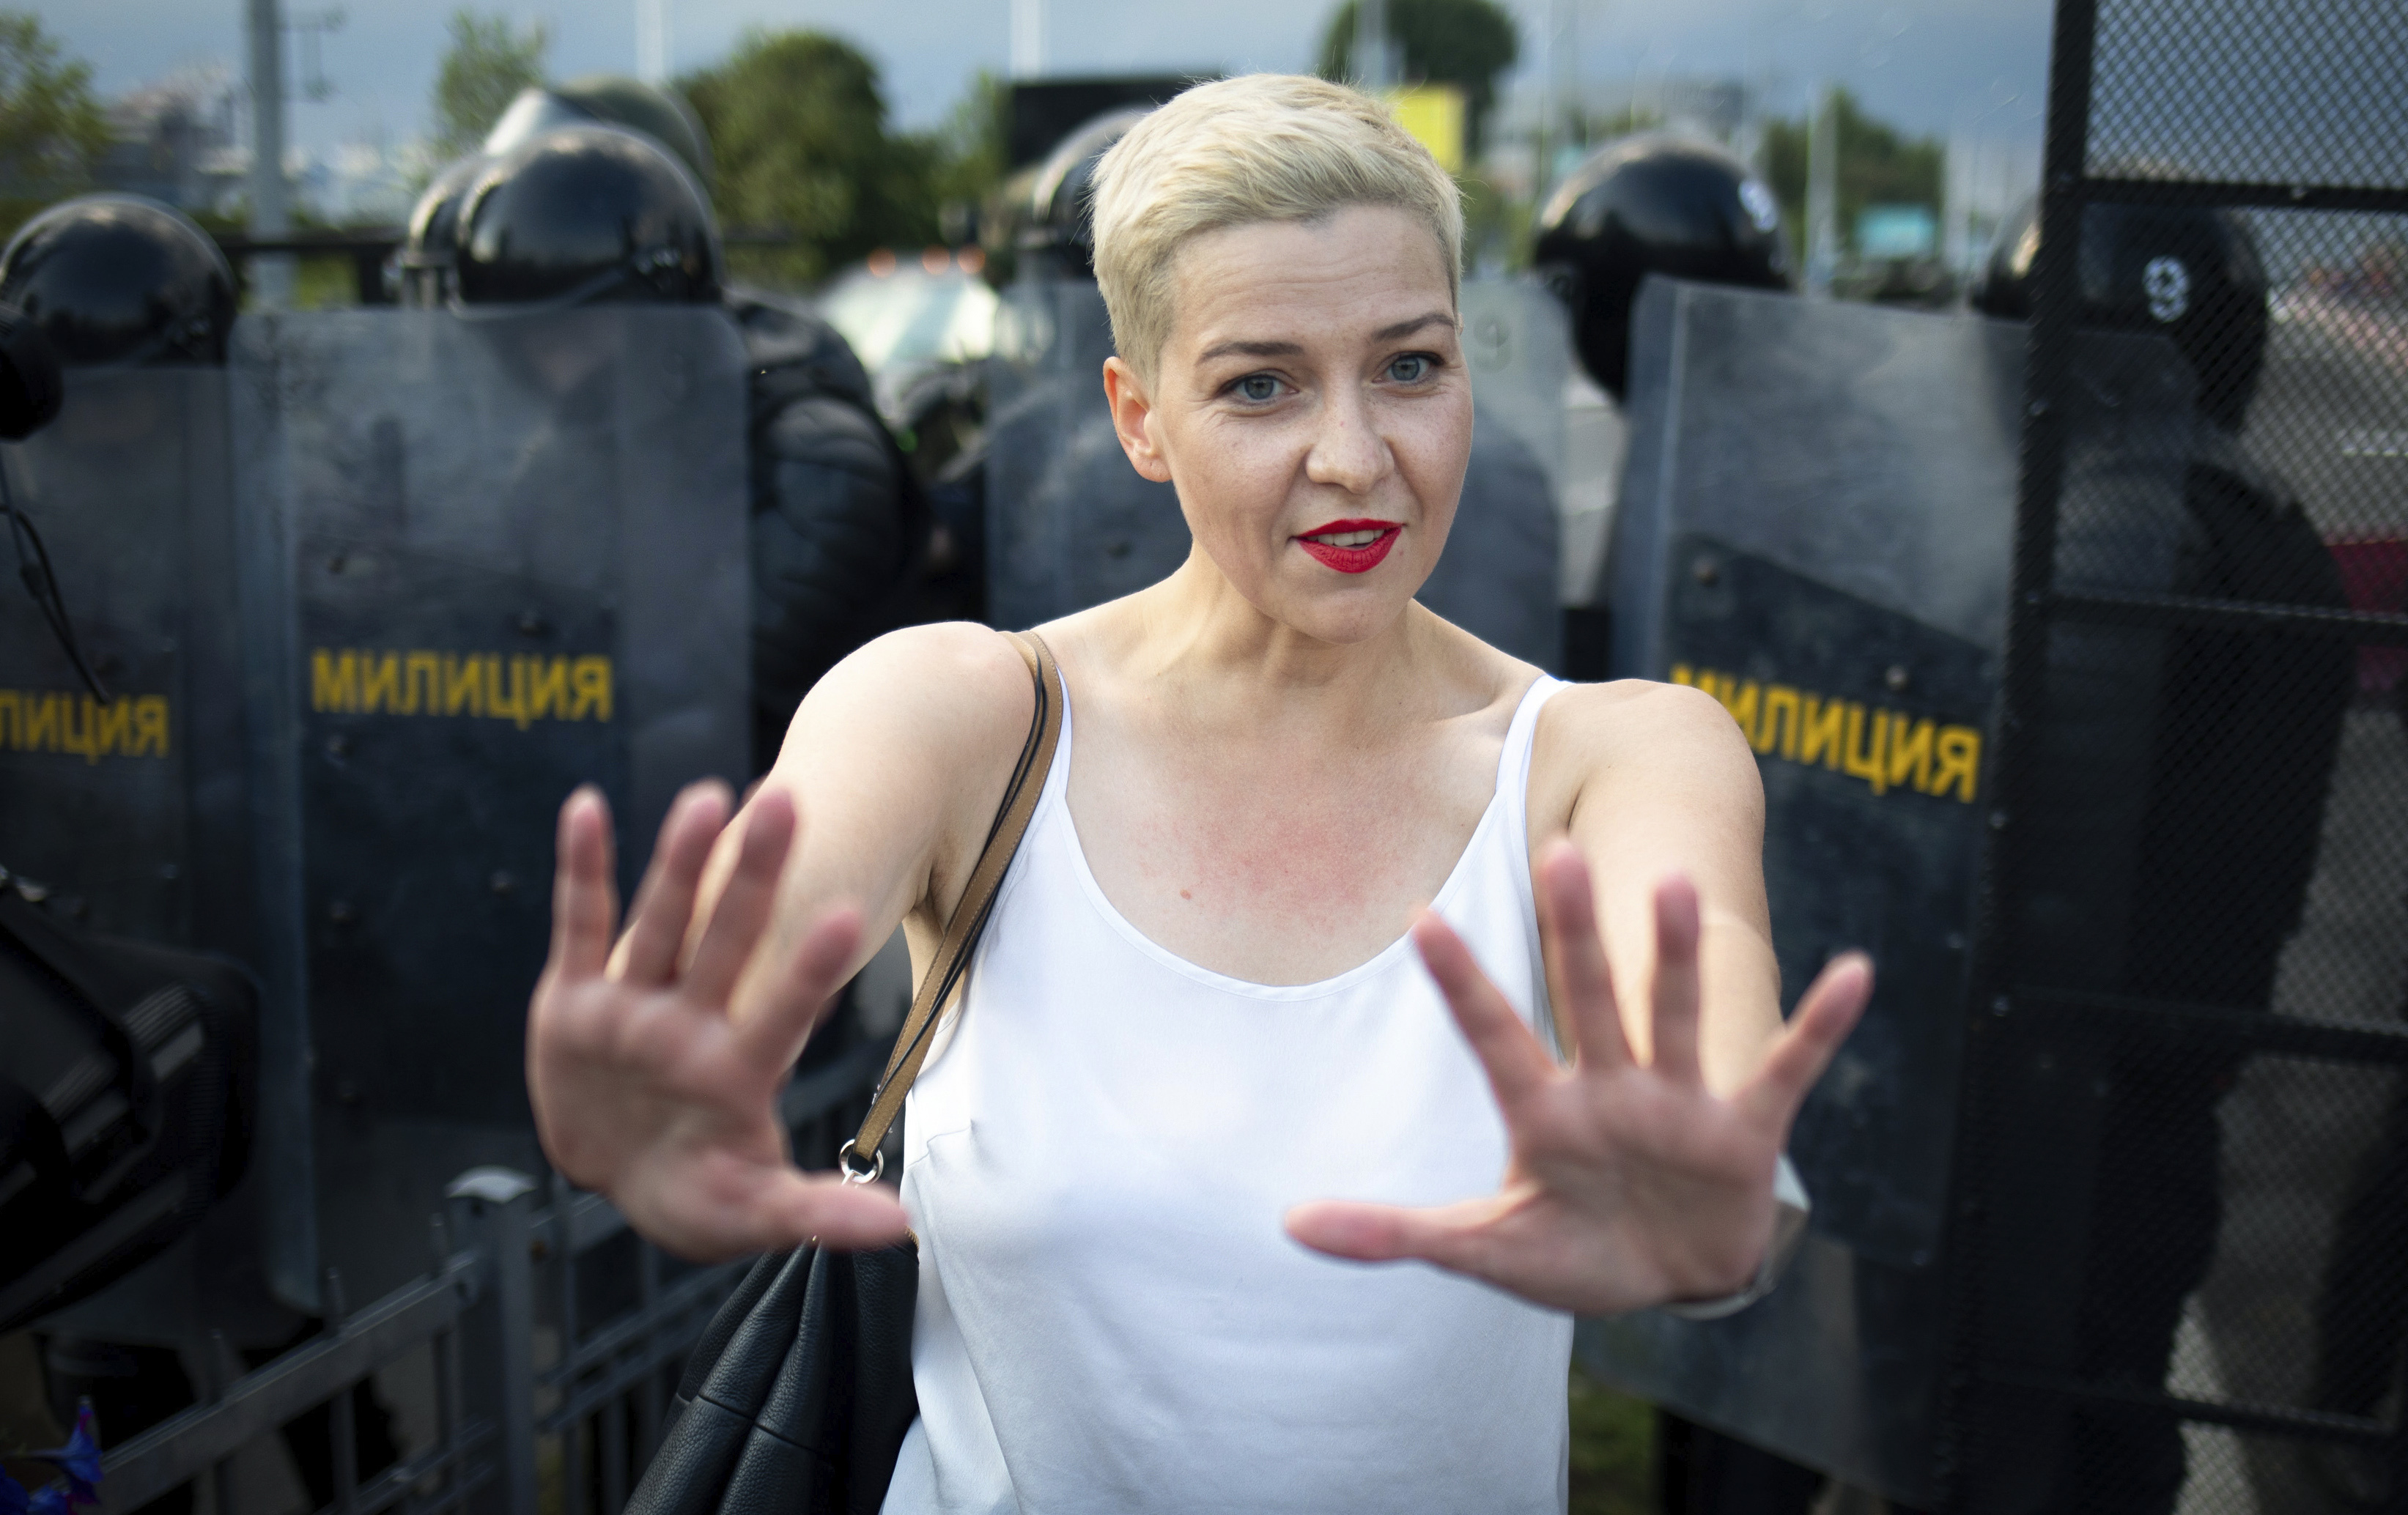 In this Aug. 30, 2020, file photo, Maria Kolesnikova, one of Belarus' opposition leaders, gestures during a rally in Minsk, Belarus.